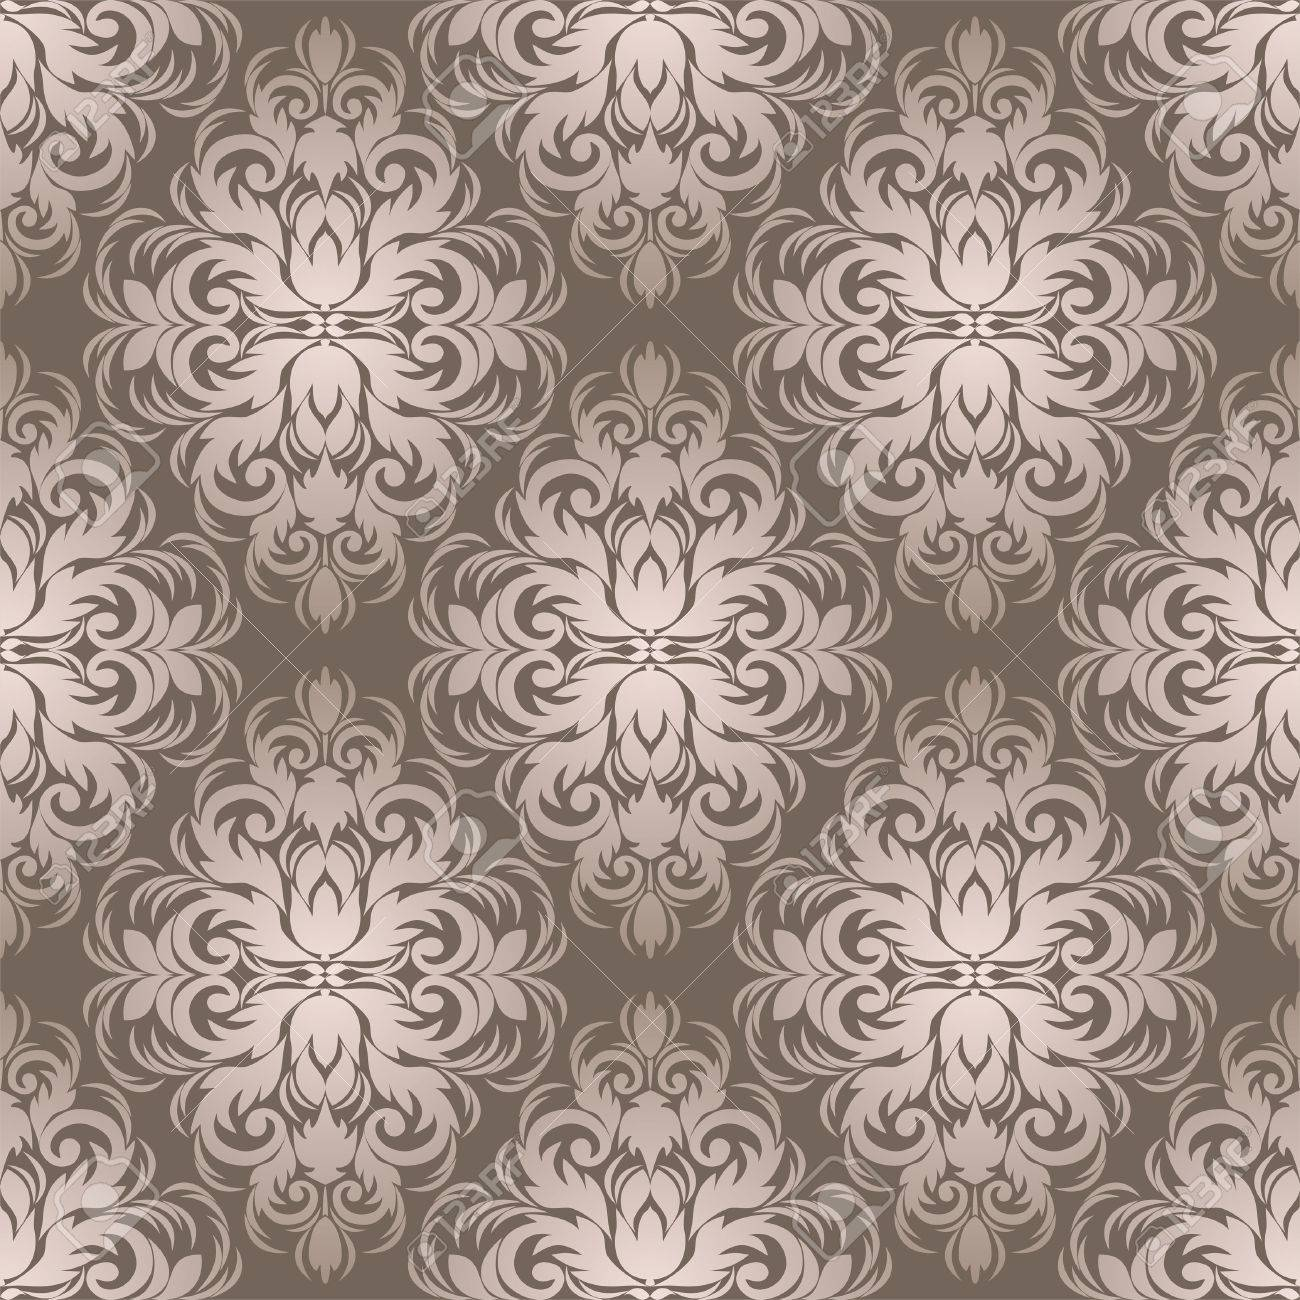 Silver Seamless Damask Wallpaper For Design Royalty Free Cliparts